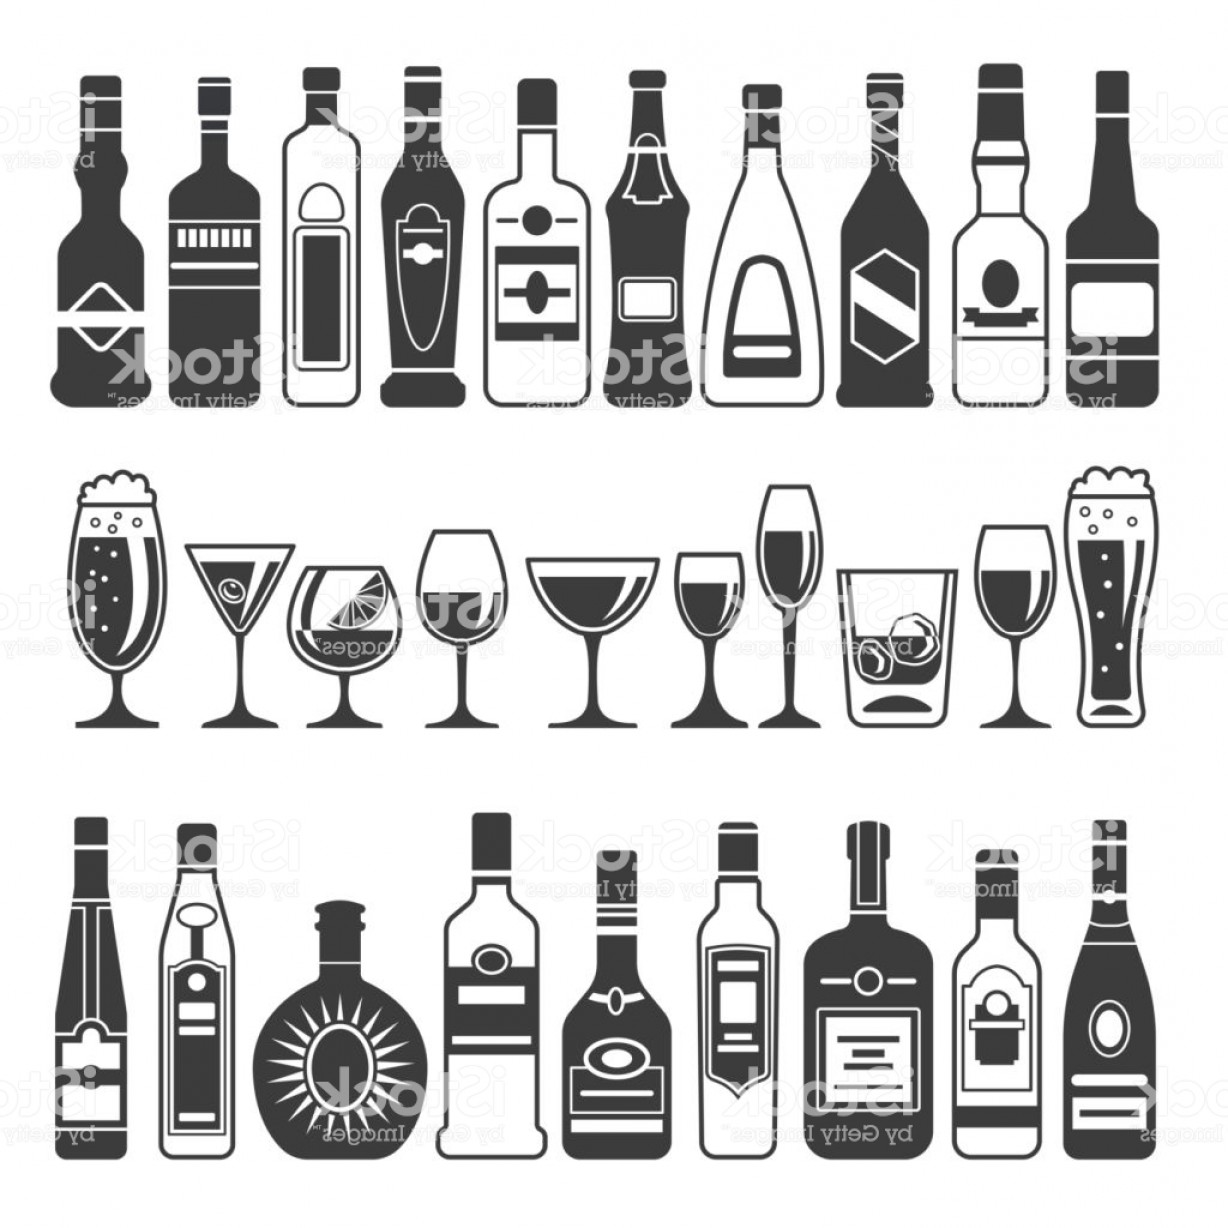 Booze Bottle Vector: Monochrome Illustrations Of Black Pictures Of Alcoholic Bottles Vector Illustrations Gm